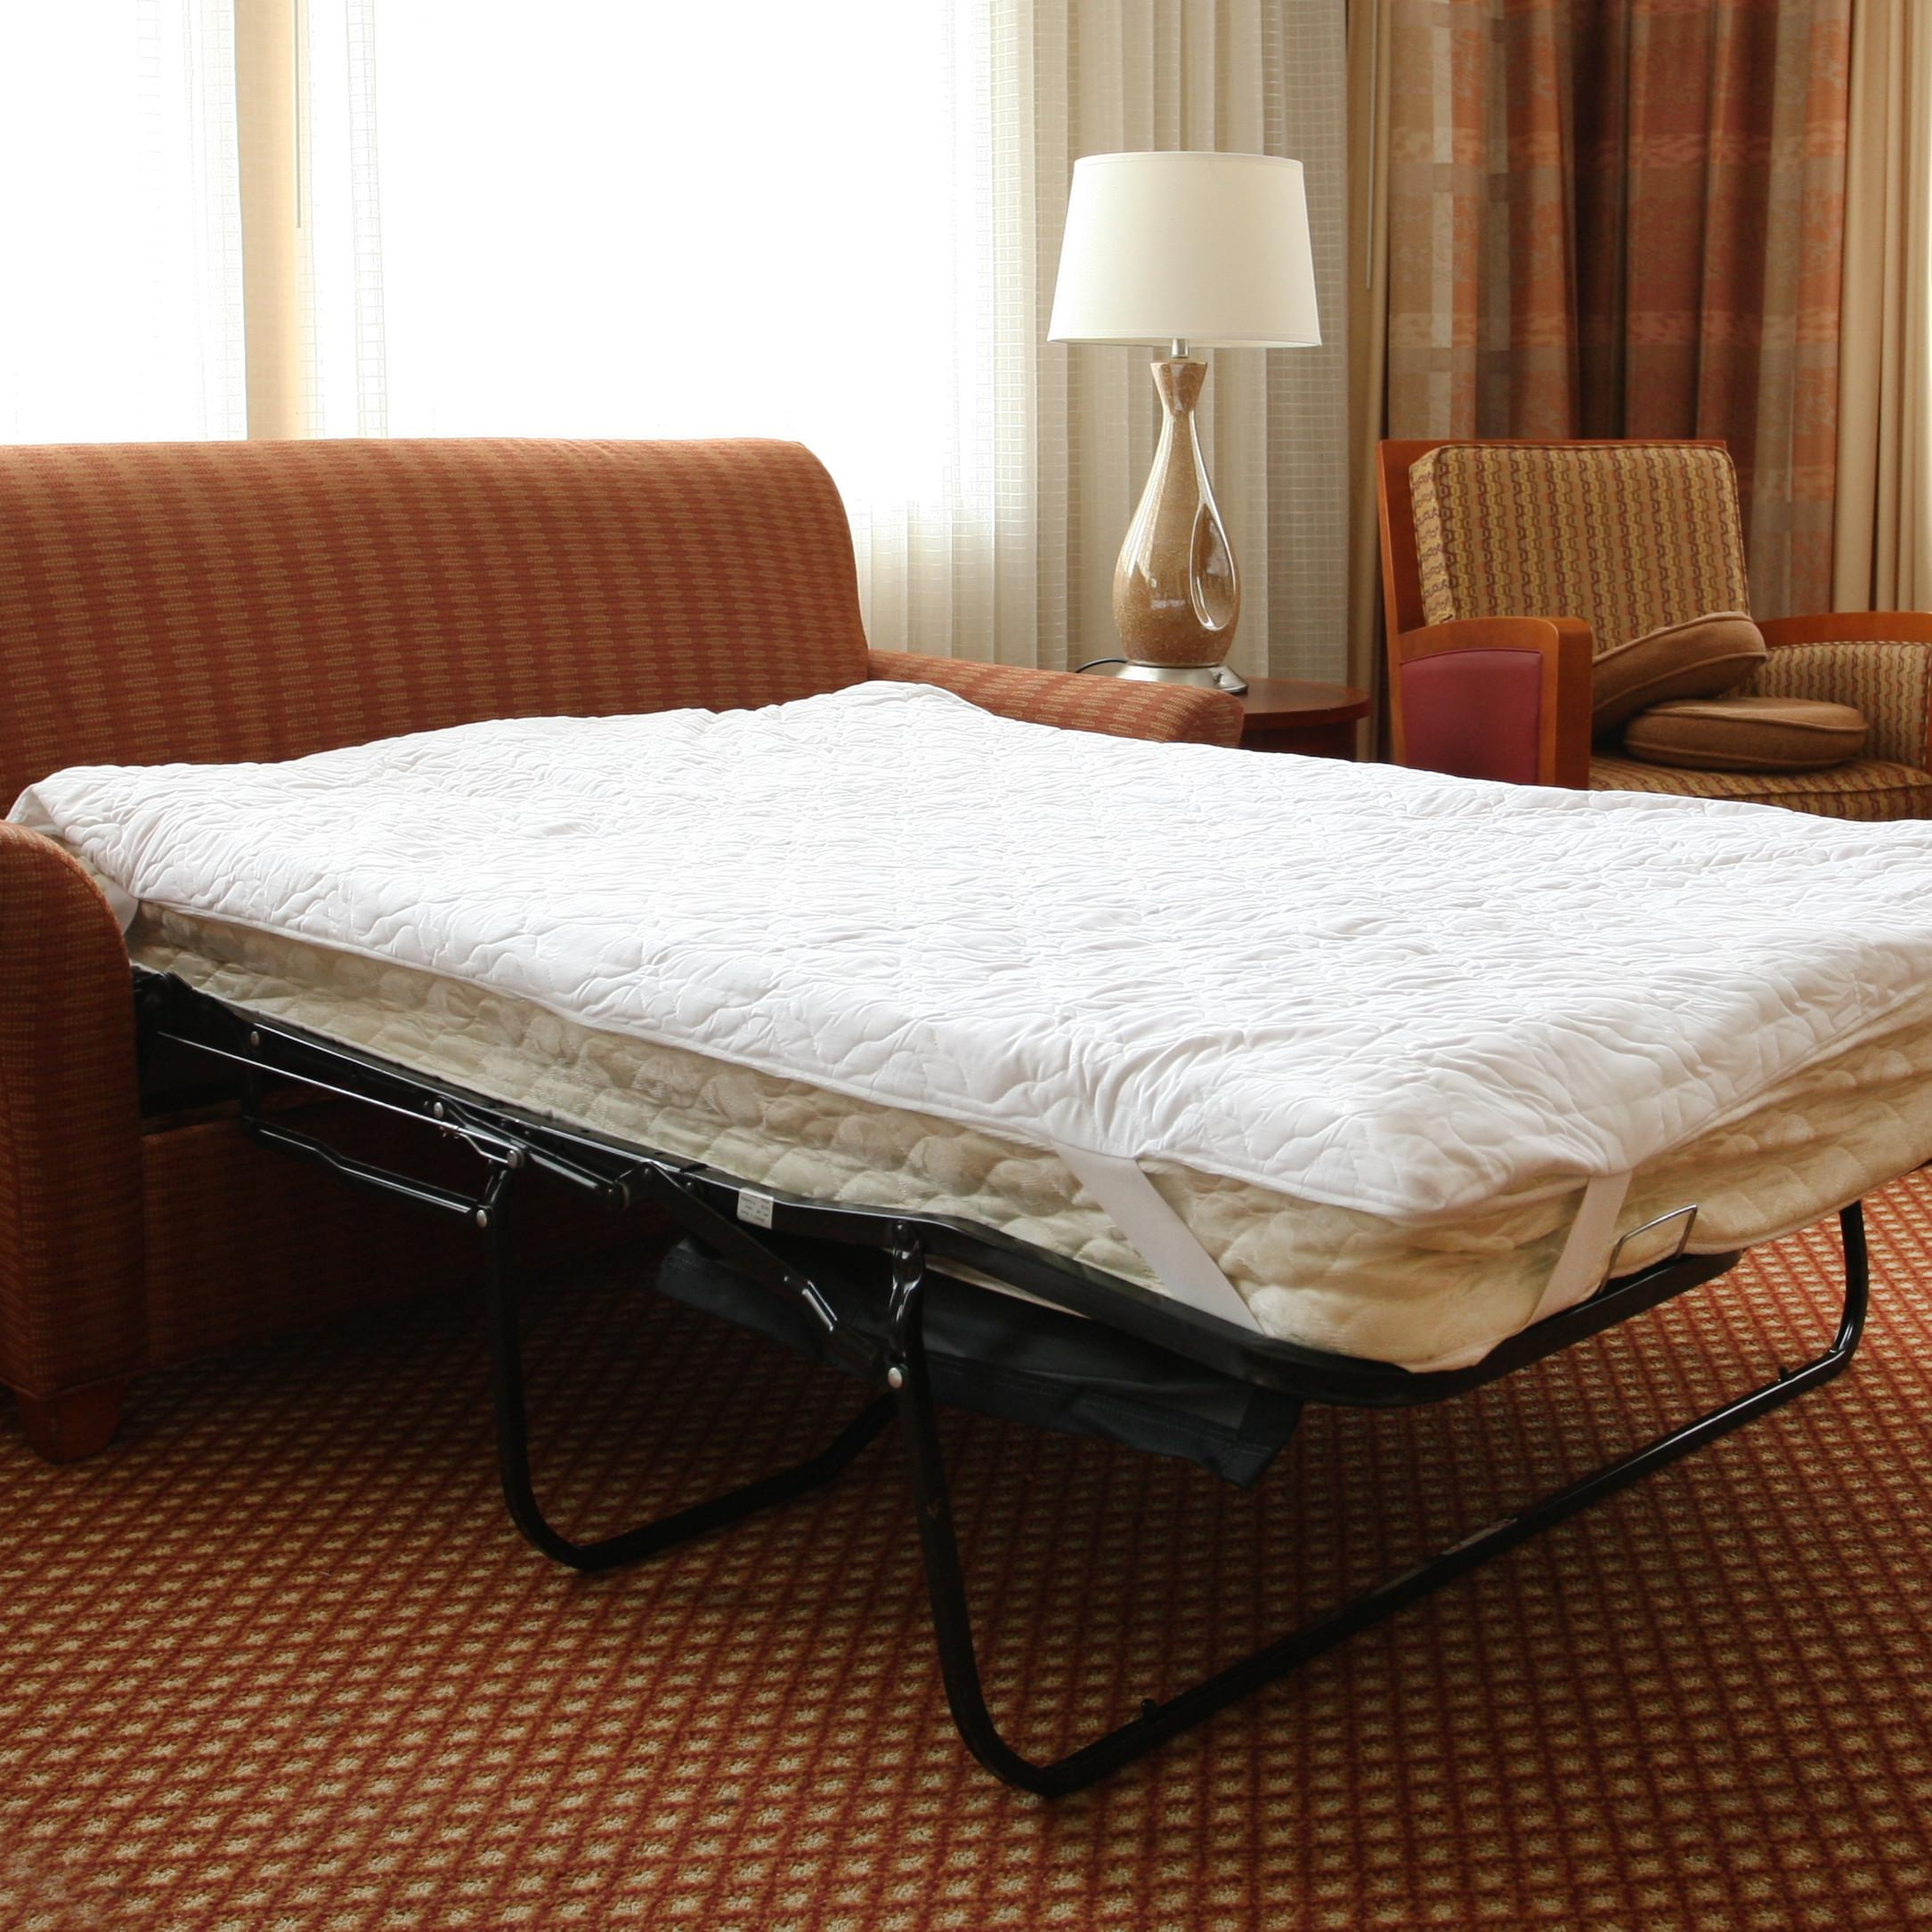 Sheets For Sofa Bed Mattress 27 With Sheets For Sofa Bed Mattress Throughout Sheets For Sofa Beds Mattress (Image 10 of 20)